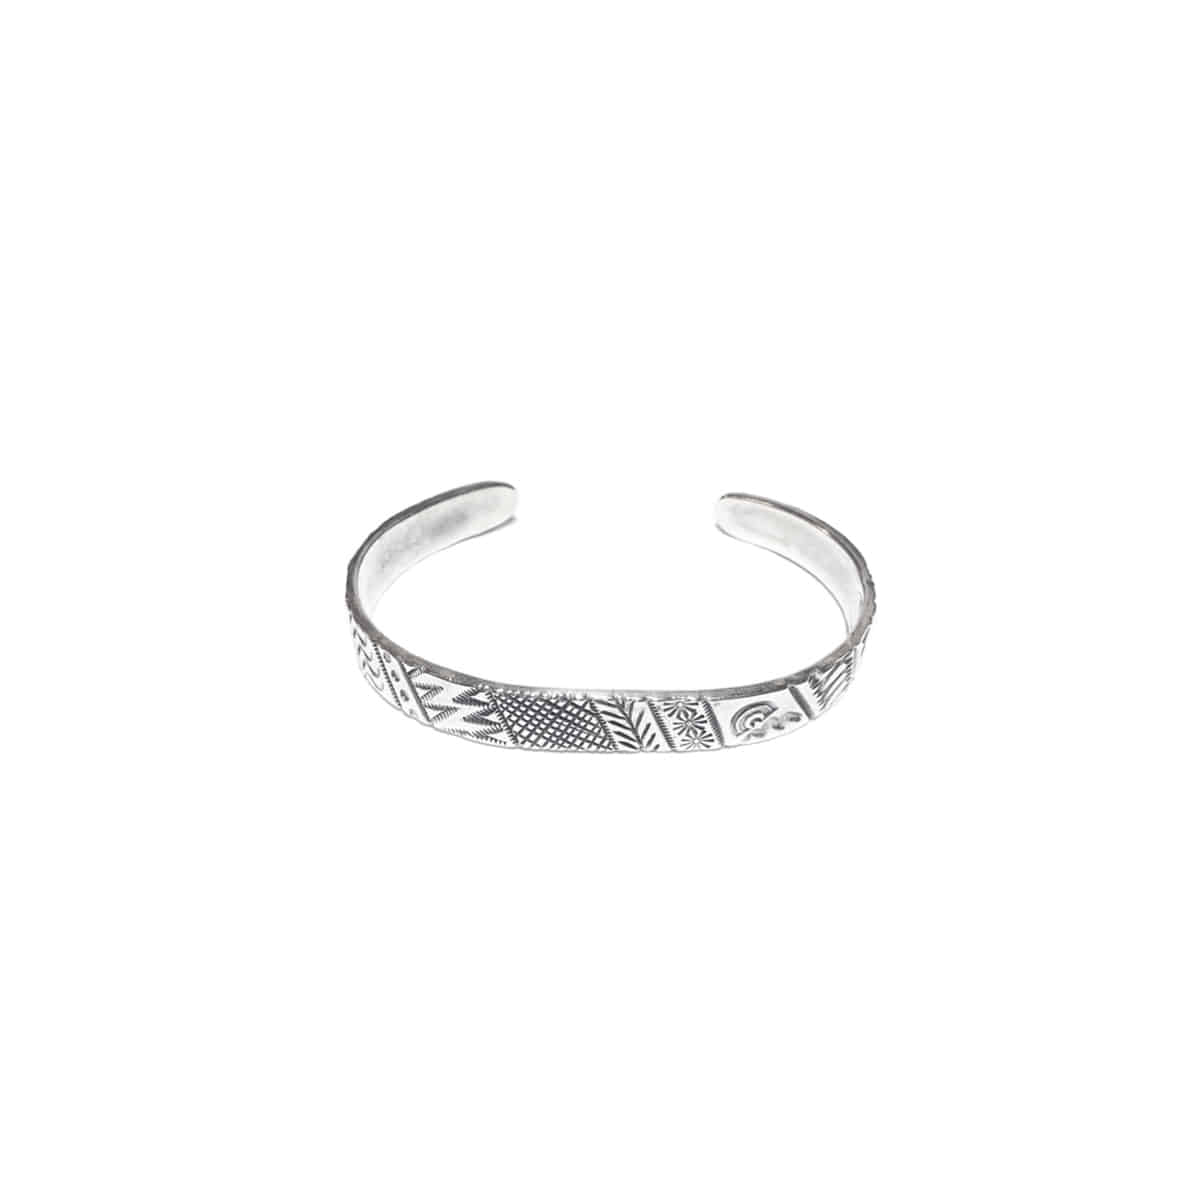 [NORTH WORKS] 900 SILVER STAMP BANGLE 'W-039'